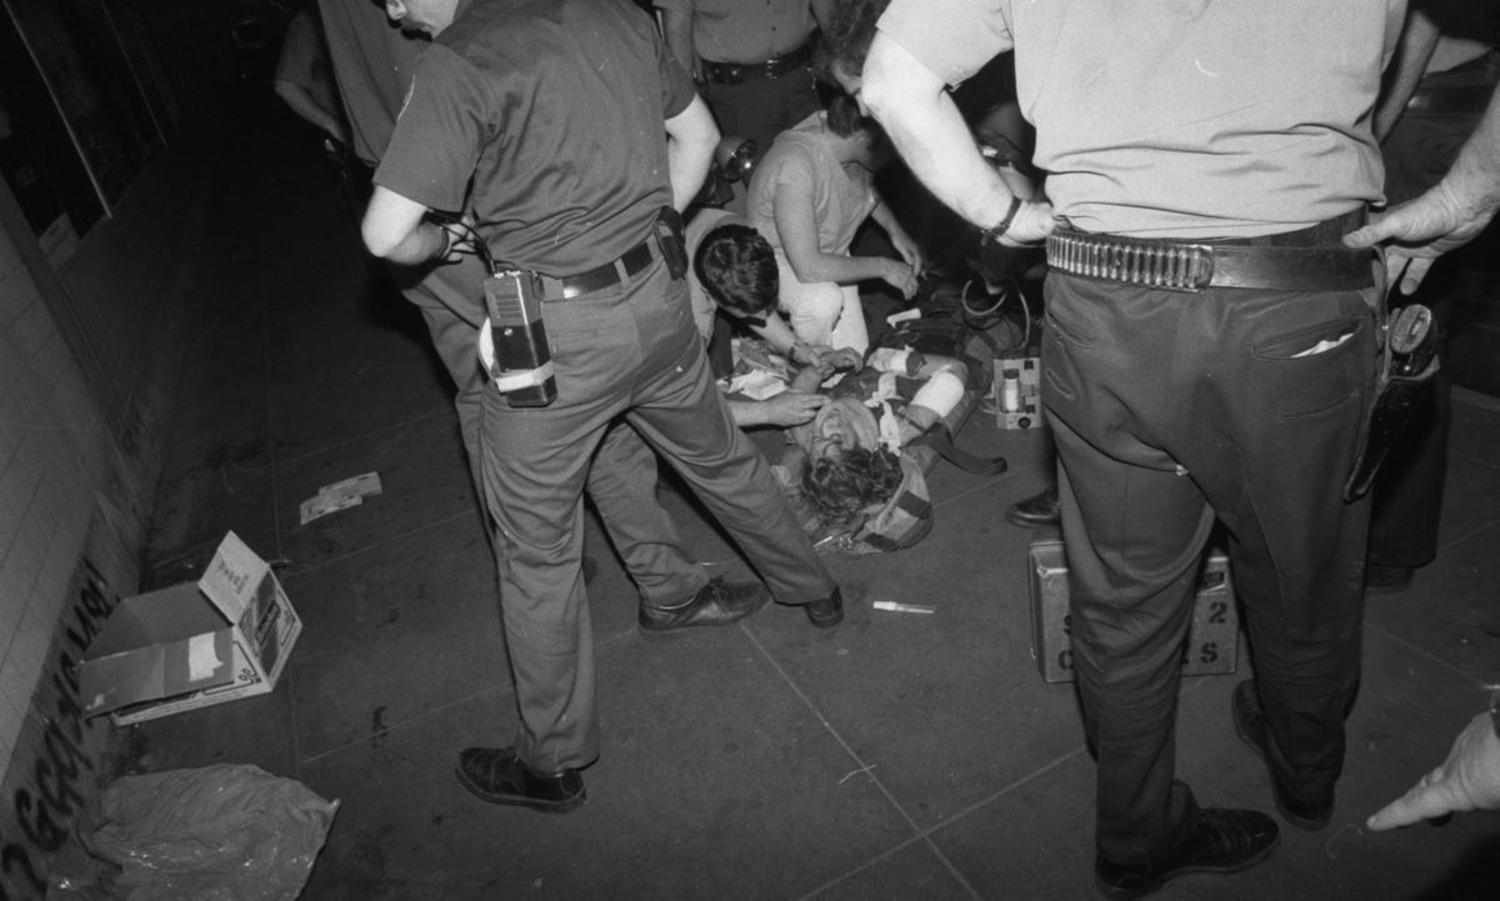 1970's: After a senseless subway attack, 17-year-old music student Renee Katz receives medical attention after her right hand was severed when she was pushed in front of a moving train at the 50th St. station.